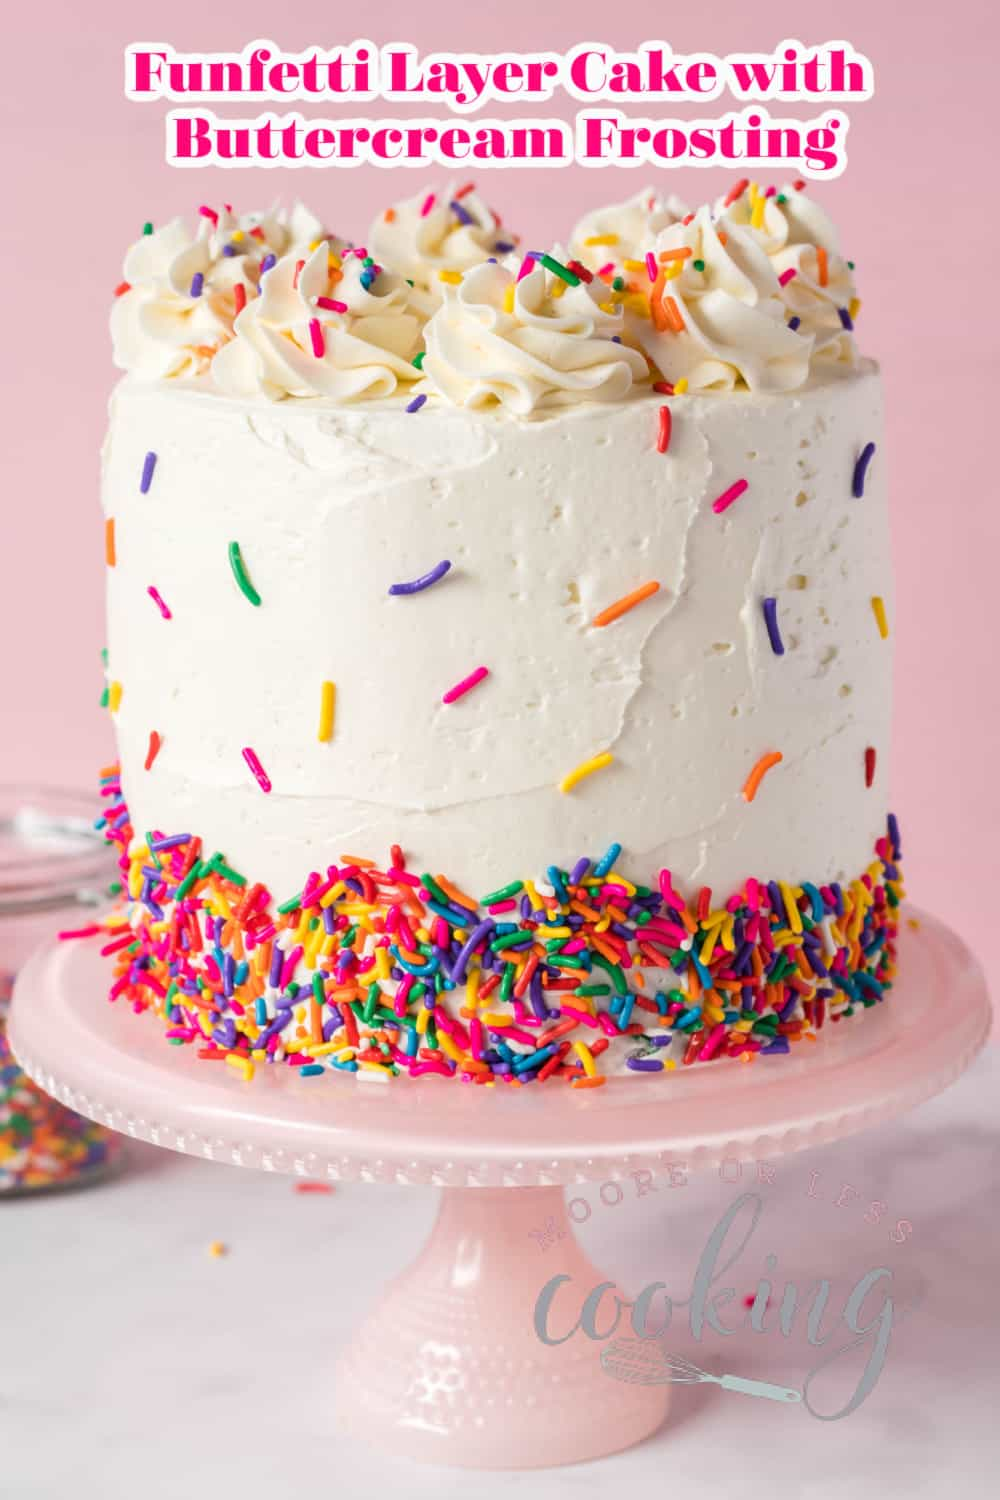 Funfetti Layer Cake with Buttercream Frosting